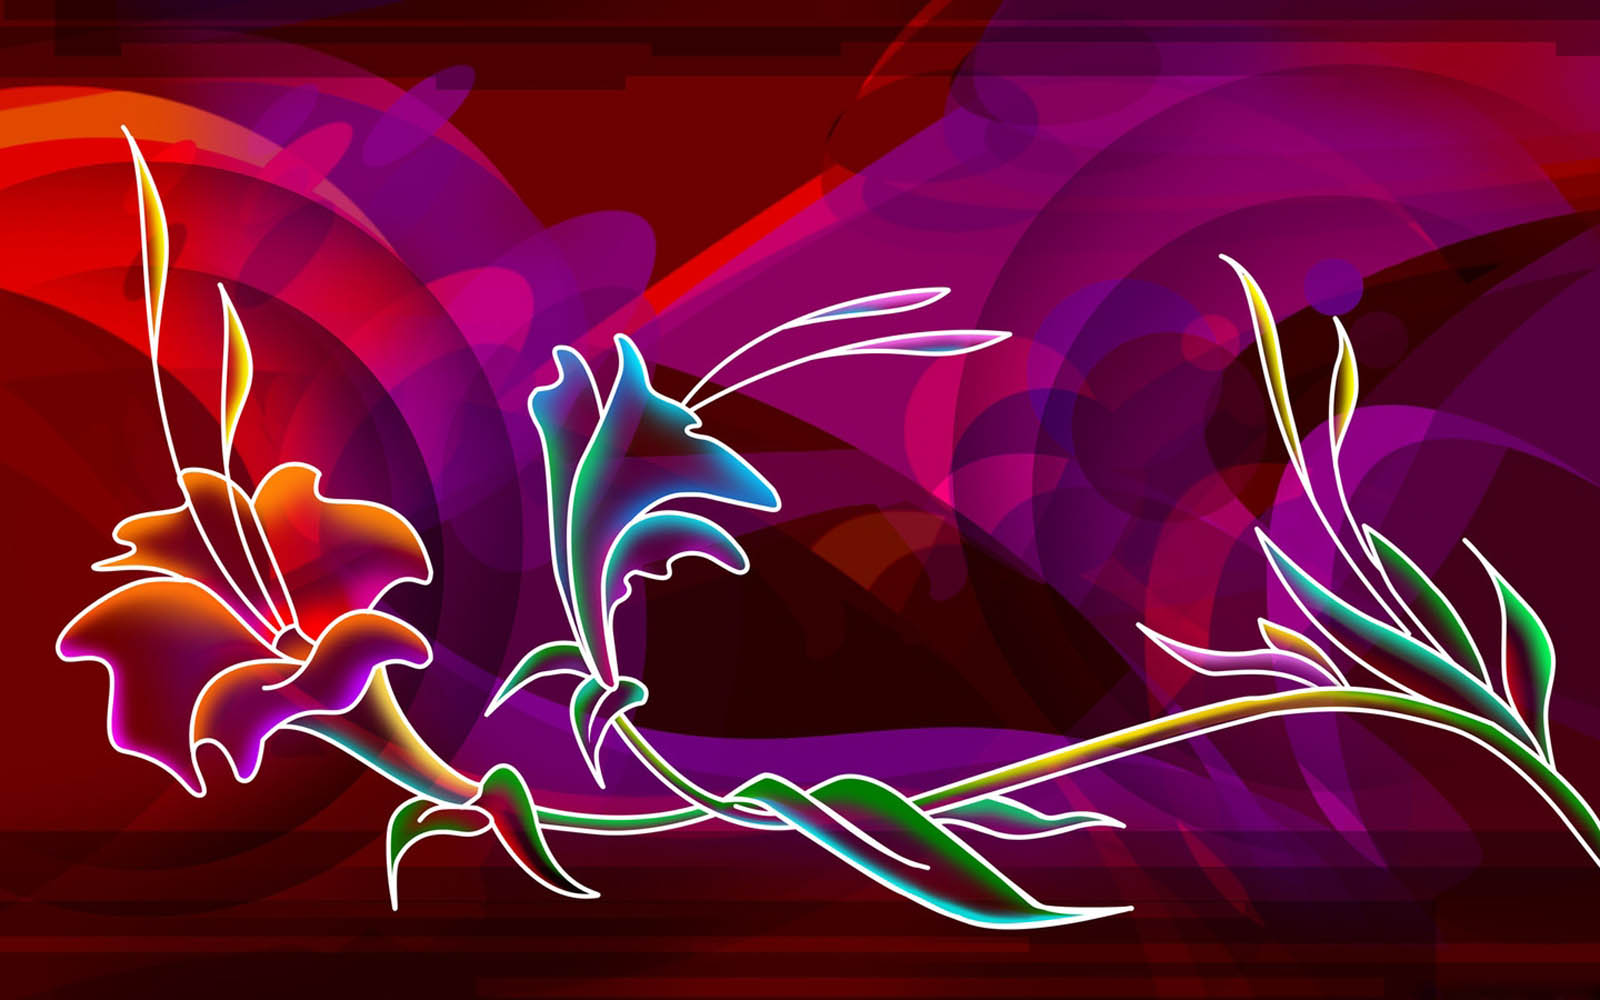 Tag Neon Art Wallpapers Backgrounds Photos Images and Pictures for 1600x1000